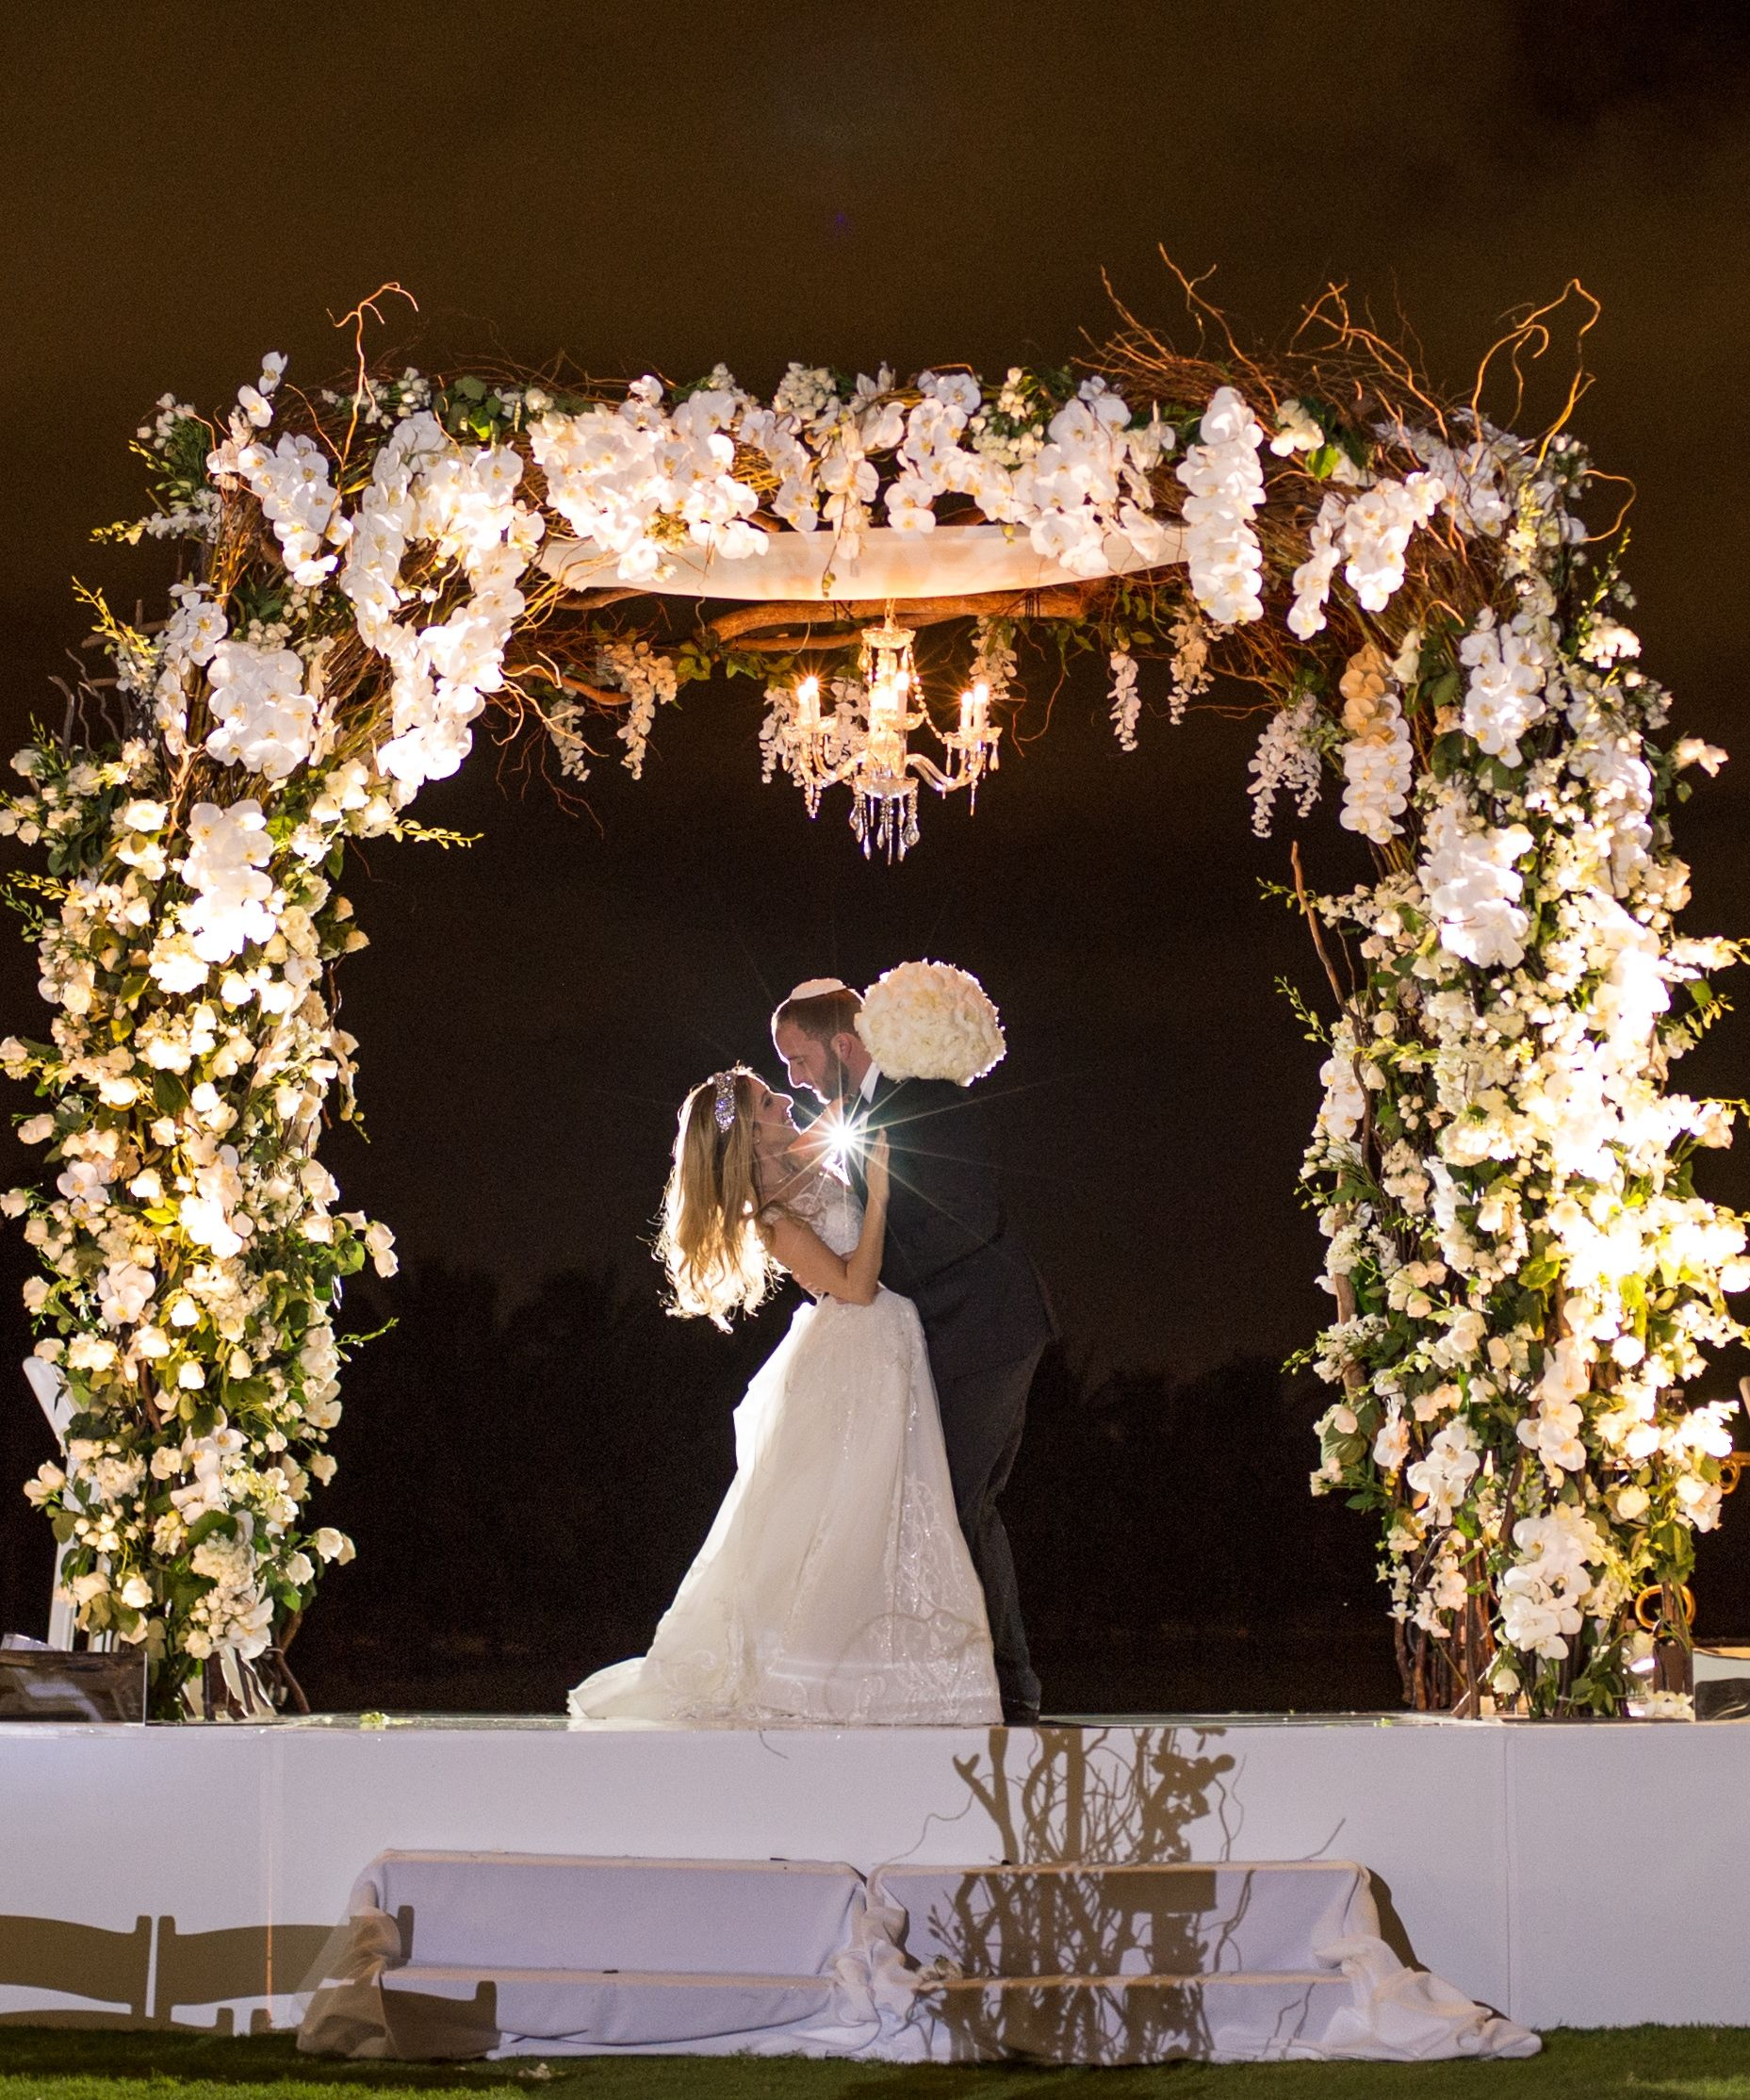 Outdoor Wedding Ceremony Locations: Outdoor Evening Wedding Ceremony. White Chuppah With